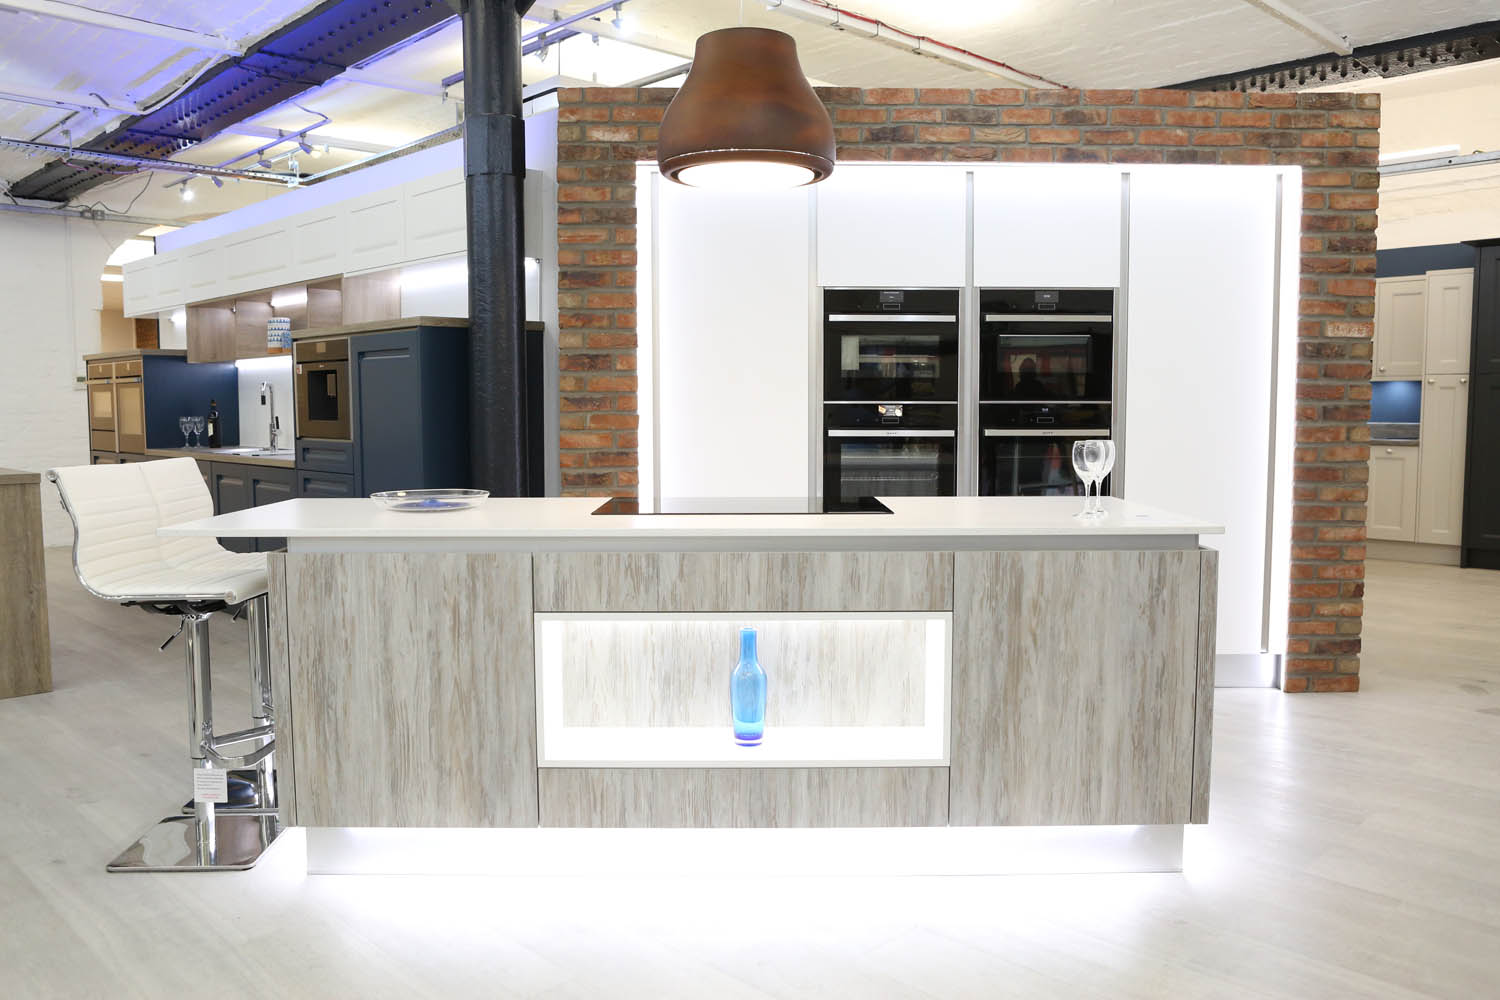 Elica extractor with white and grey textured fitted kitchen cabinets